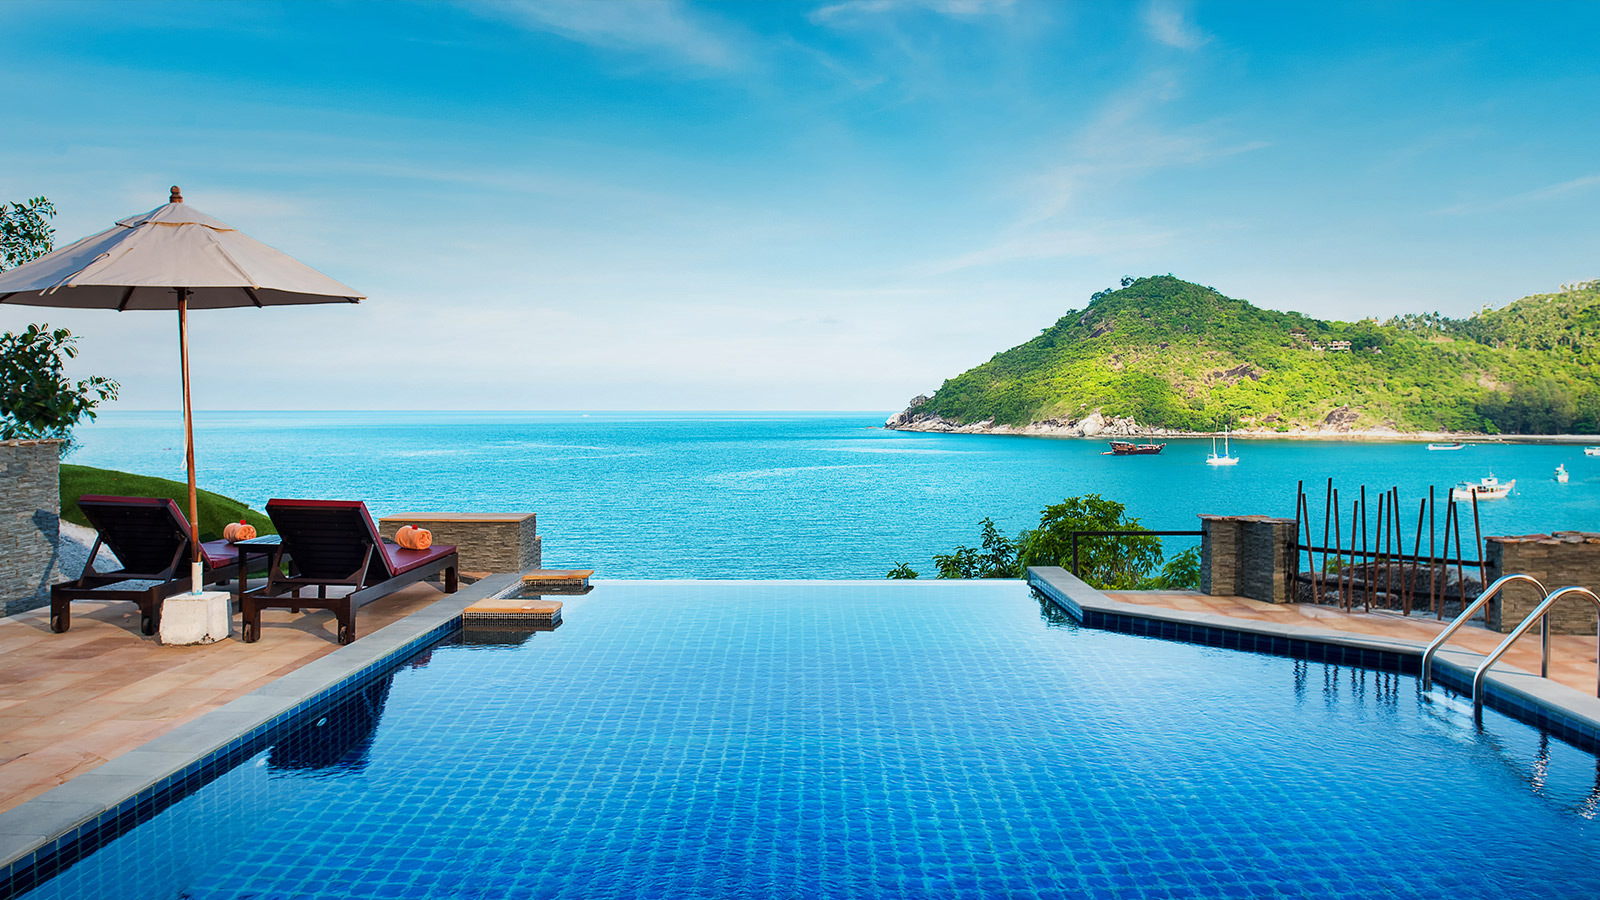 Koh Chang Luxury Boutique Hotel